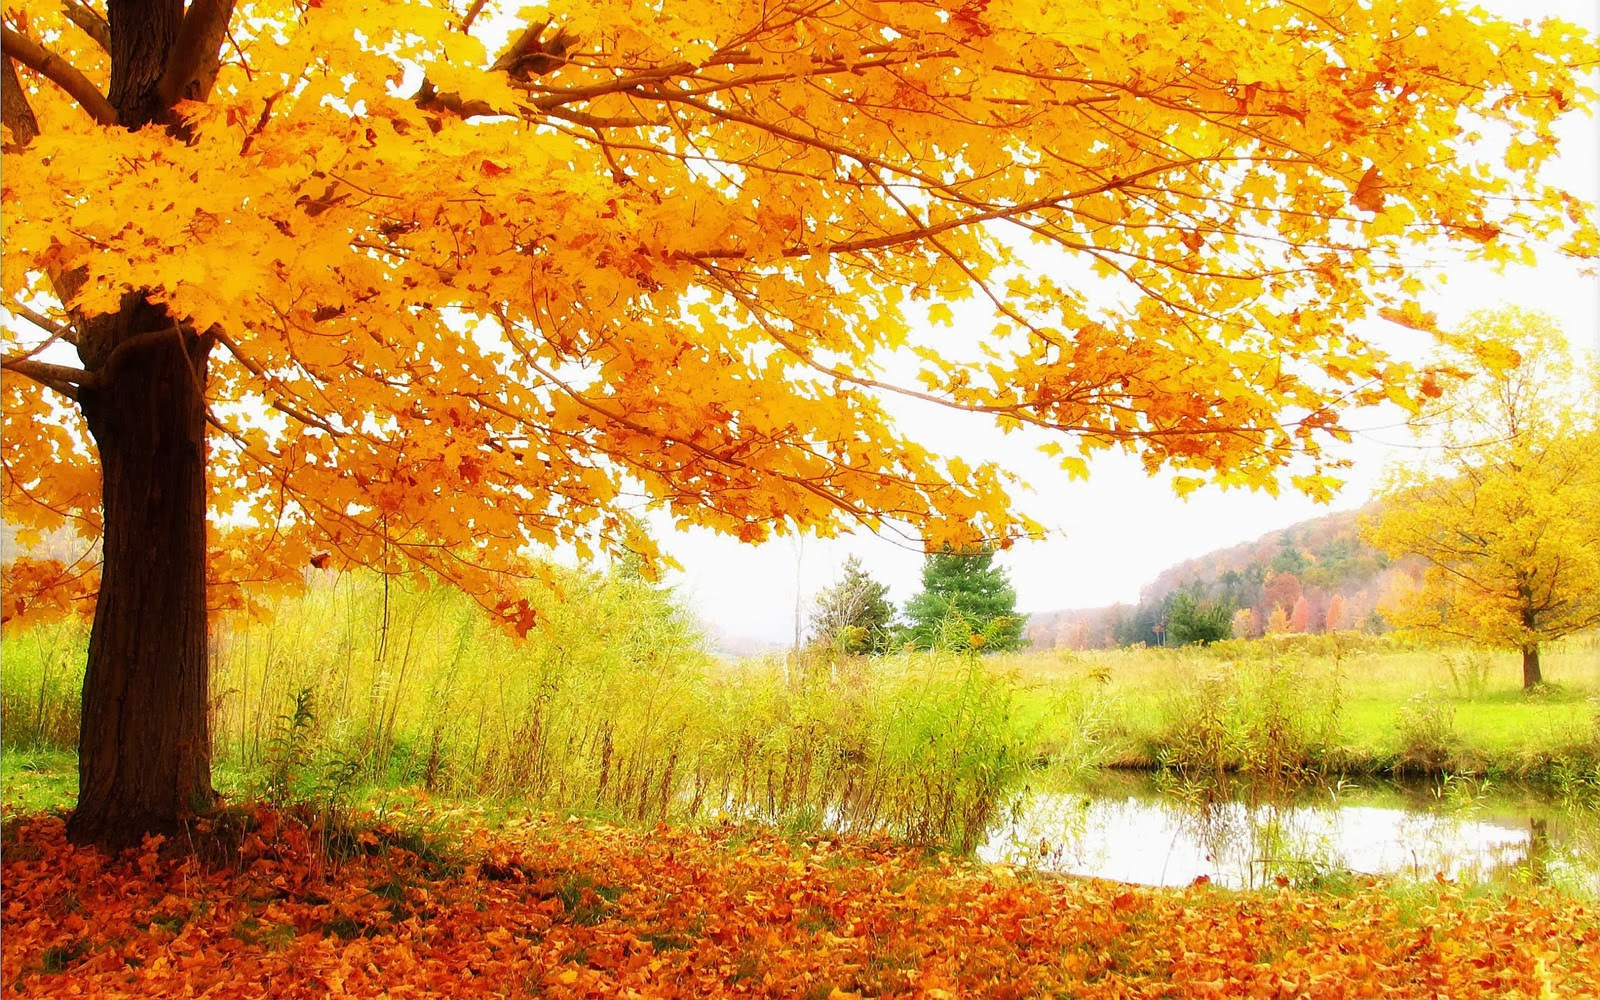 wallpapers Autumn Scenery Desktop Wallpapers 1600x1000